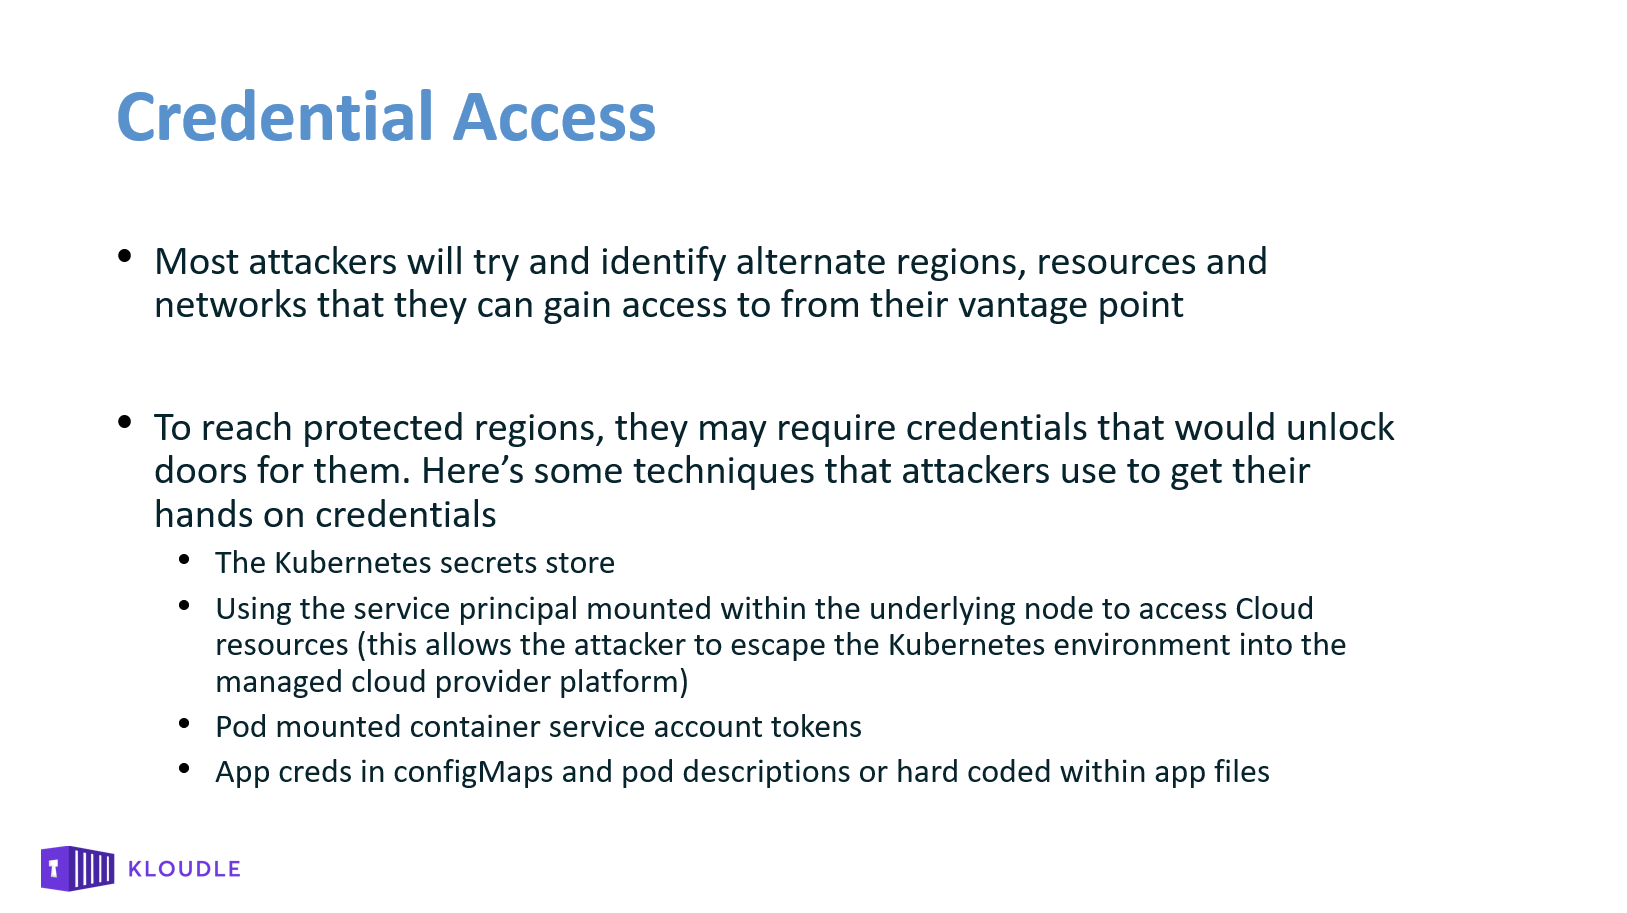 Credential Access Other Techniques